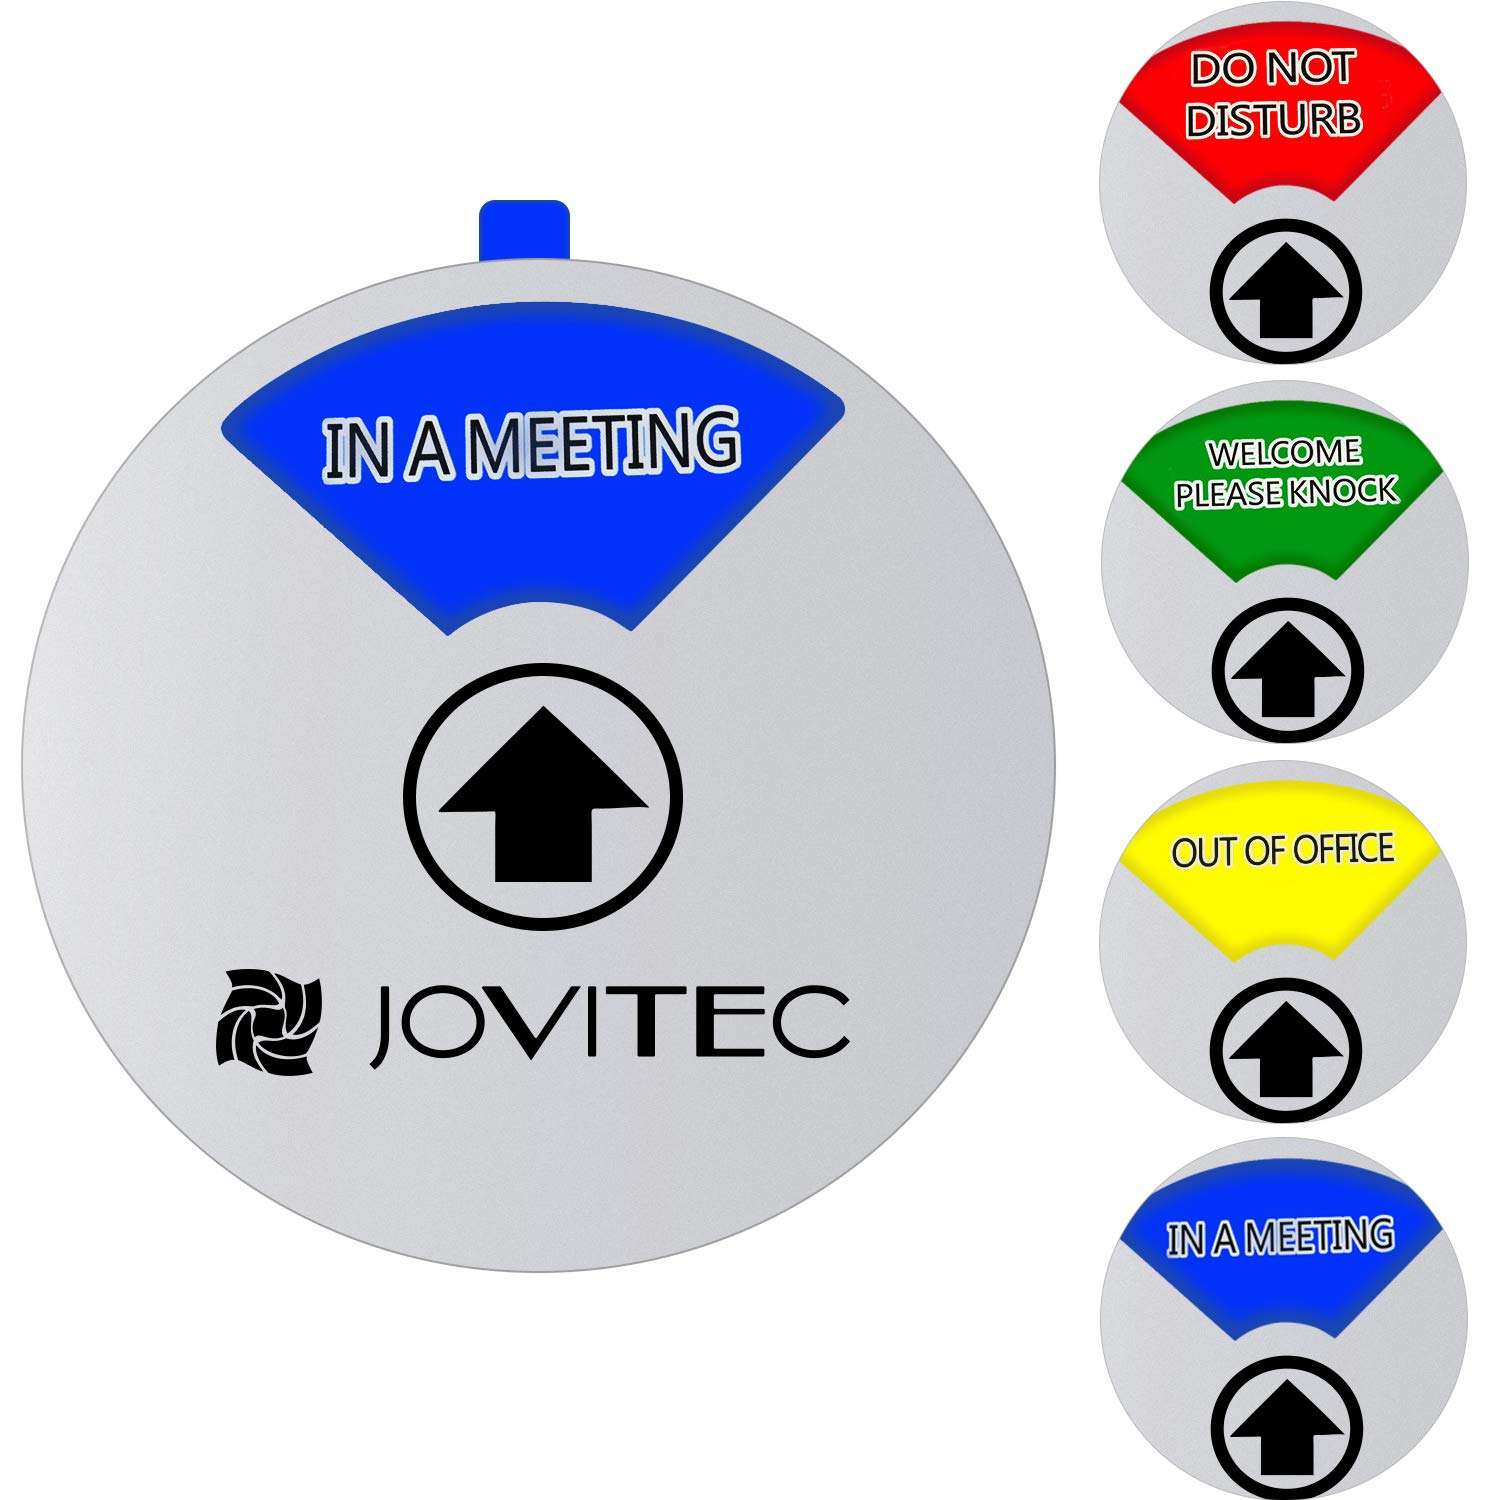 Jovitec Privacy Sign Office Sign, Include in a Meeting Sign Welcome Please Knock Sign Do Not Disturb Sign Out of Office Sign for Home Office Supplies (Color 2, 4.7 Inches)